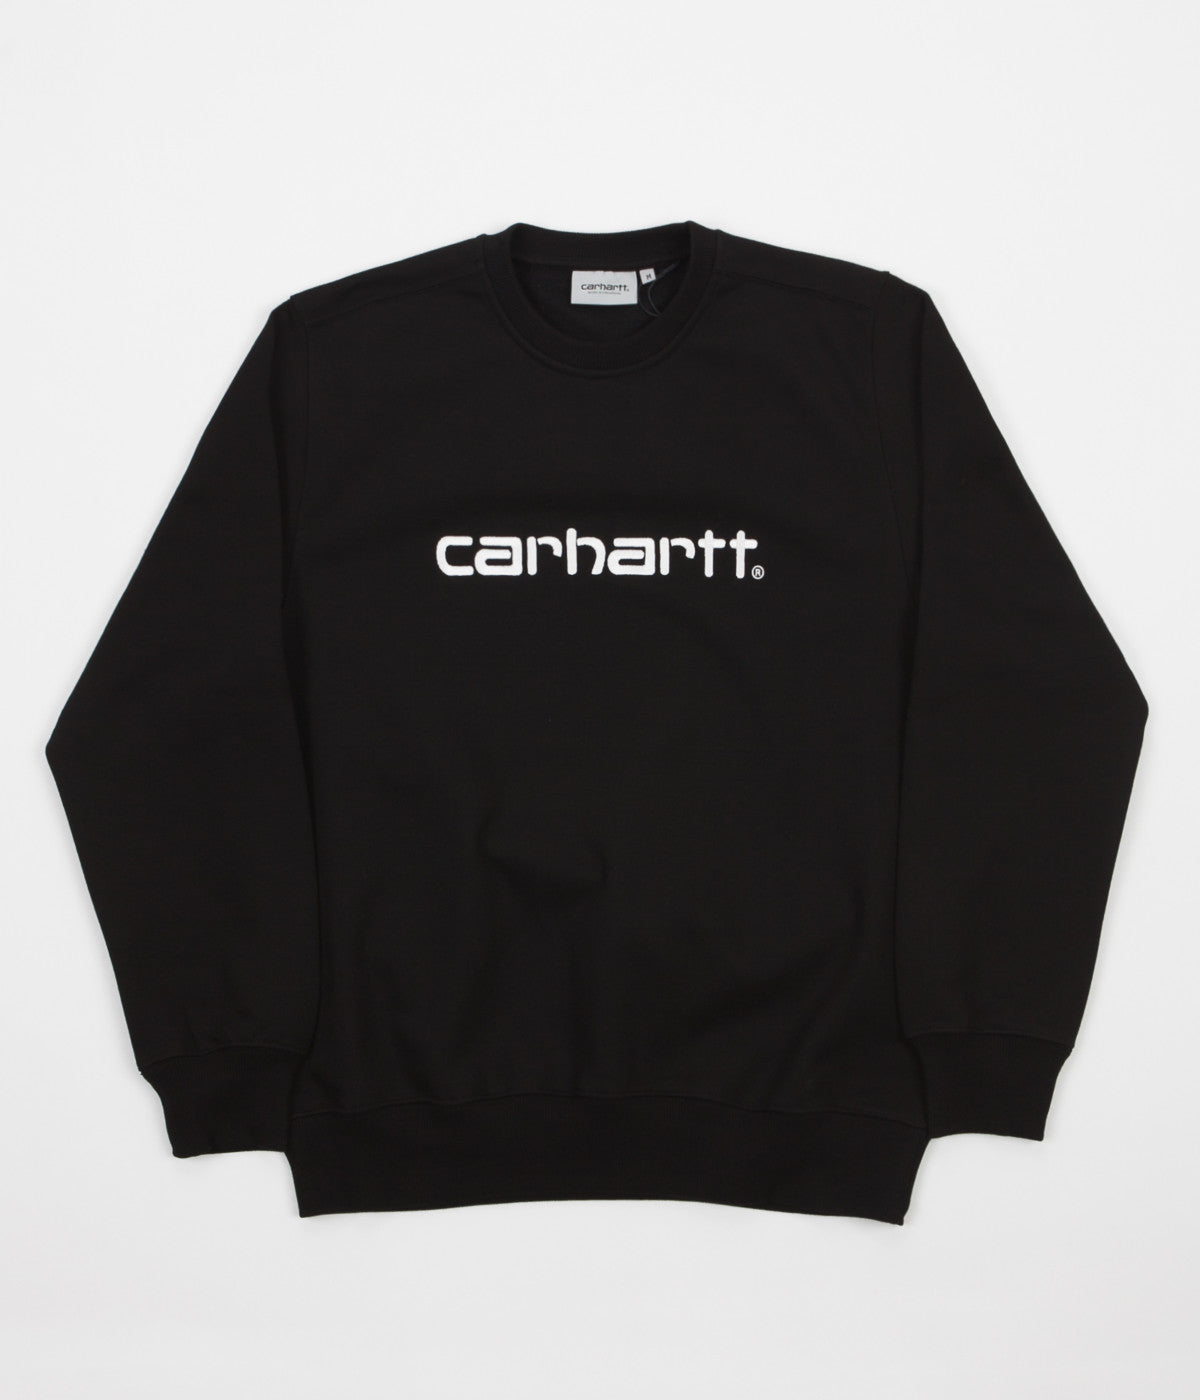 Carhartt Crewneck Sweatshirt - Black / Wax